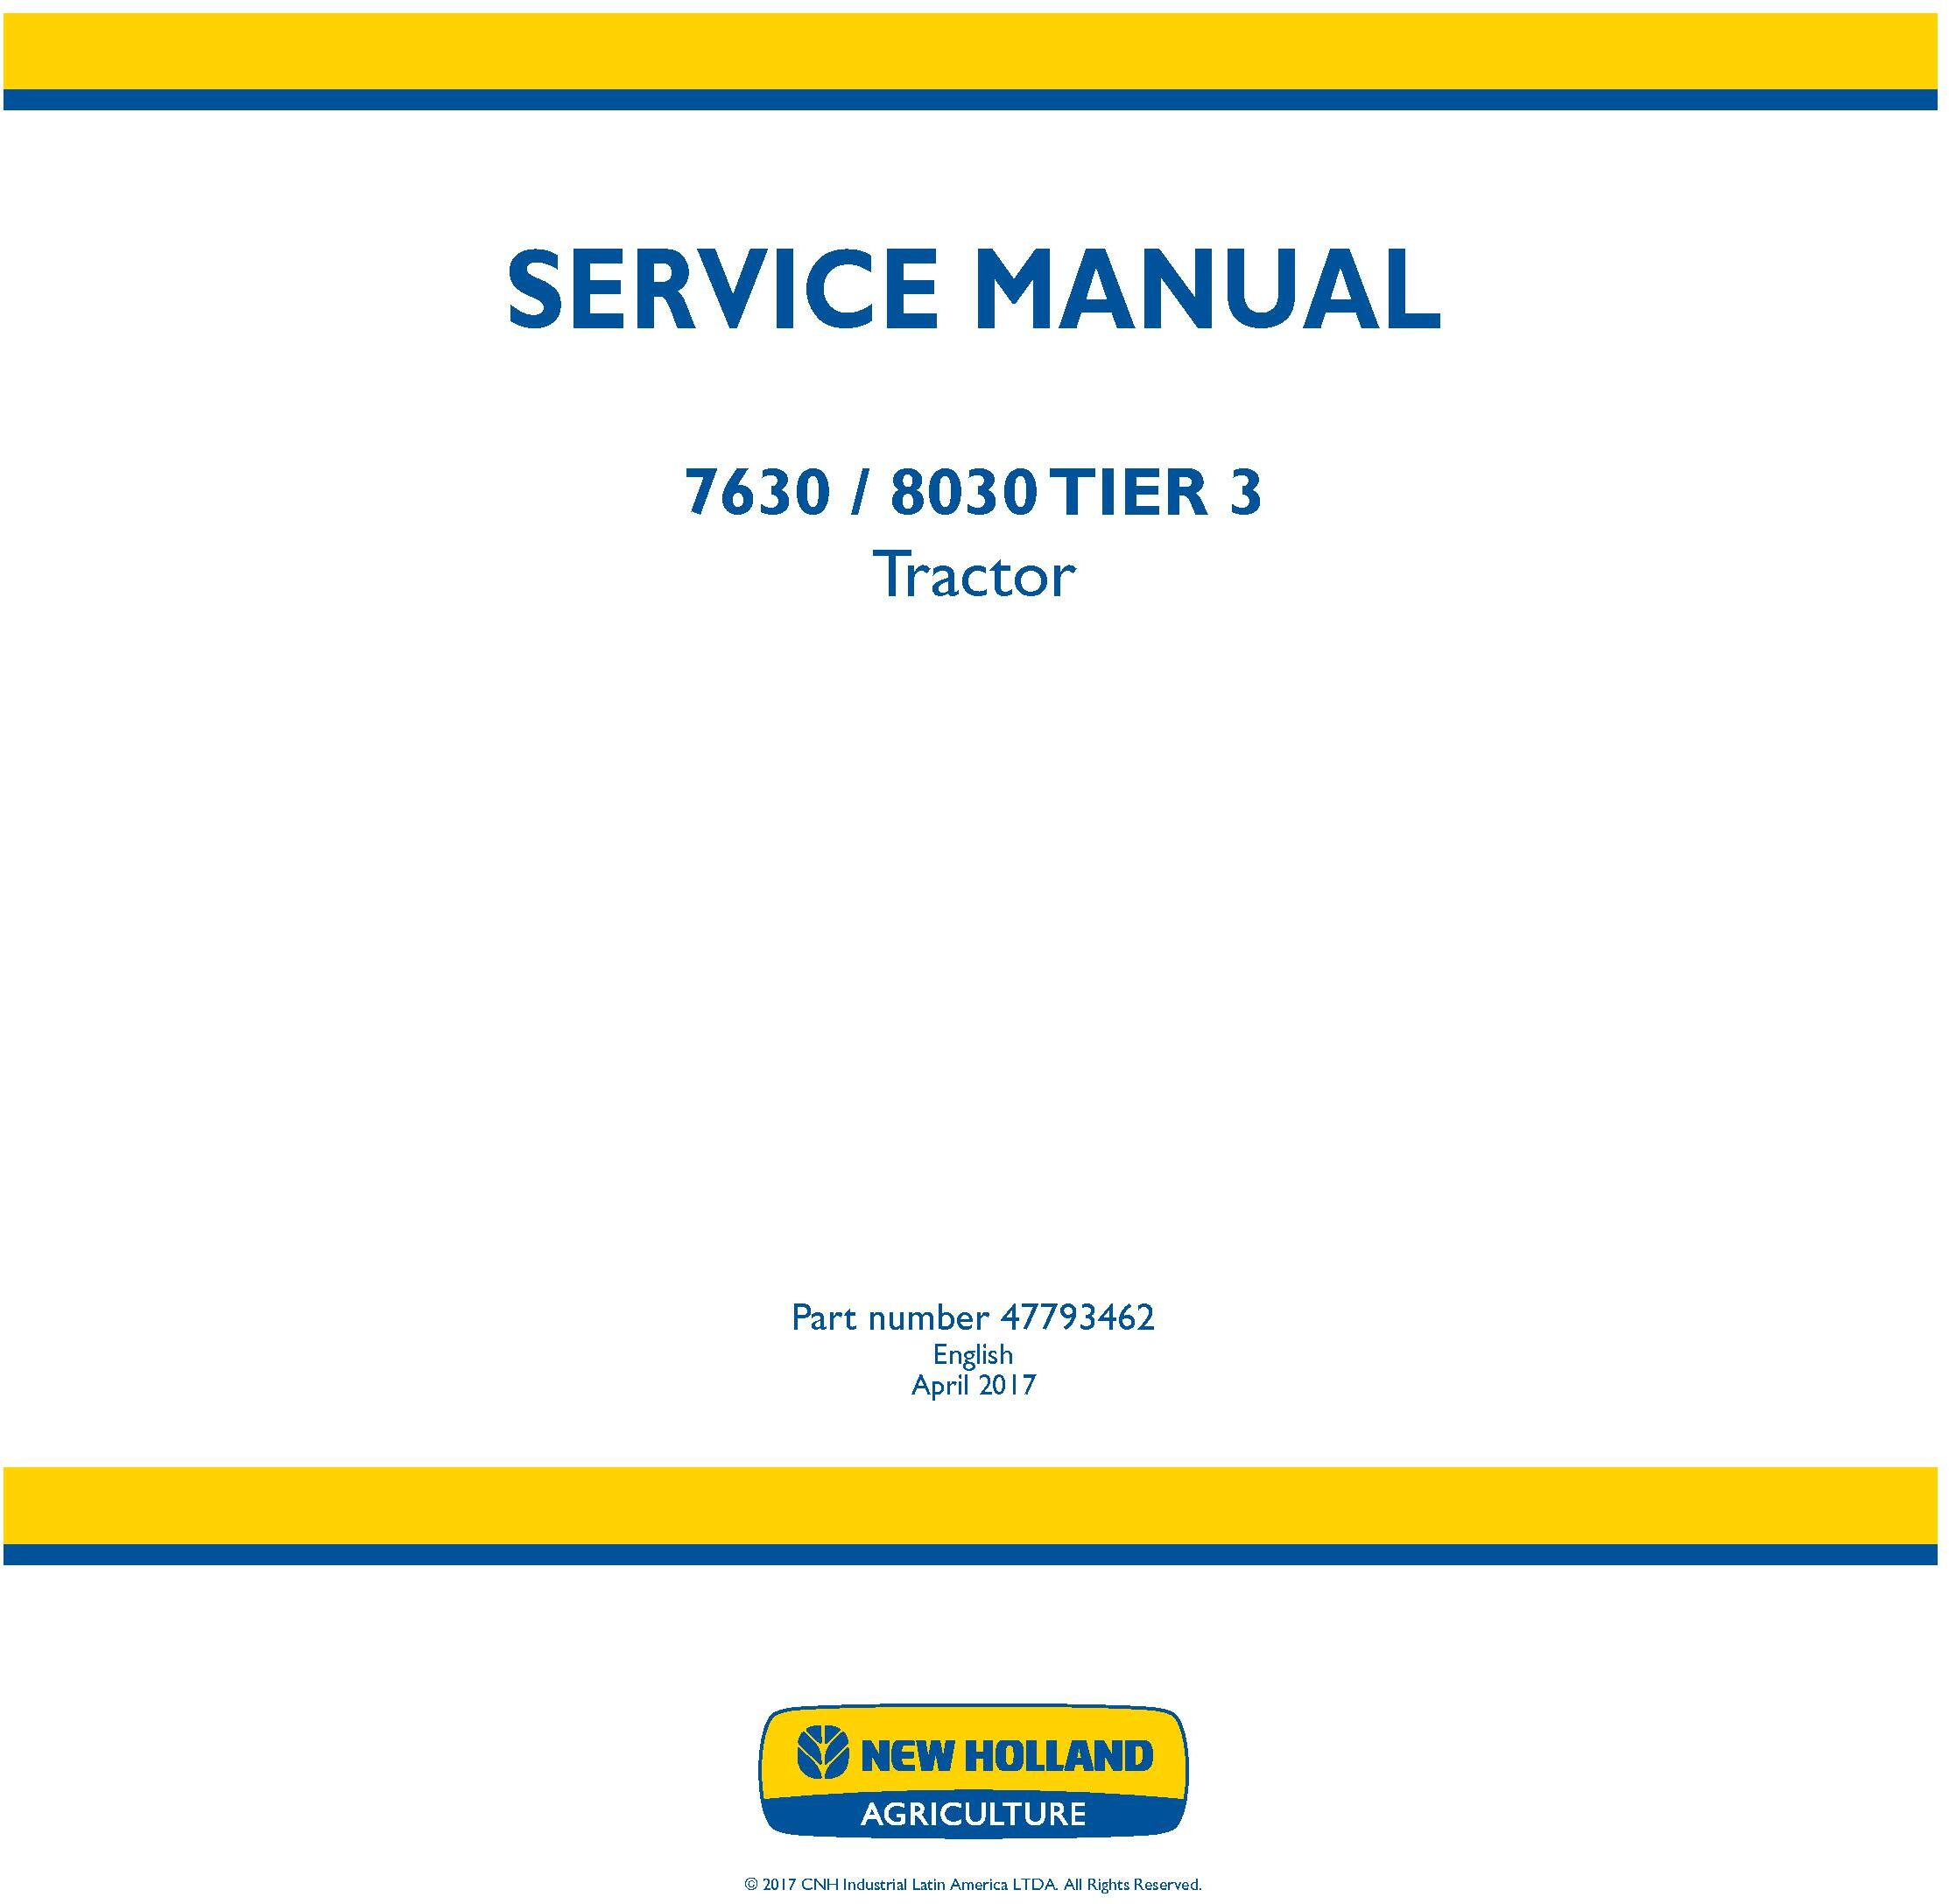 New Holland 7630, 8030 Tier 3 Tractors Service Manual - 19413